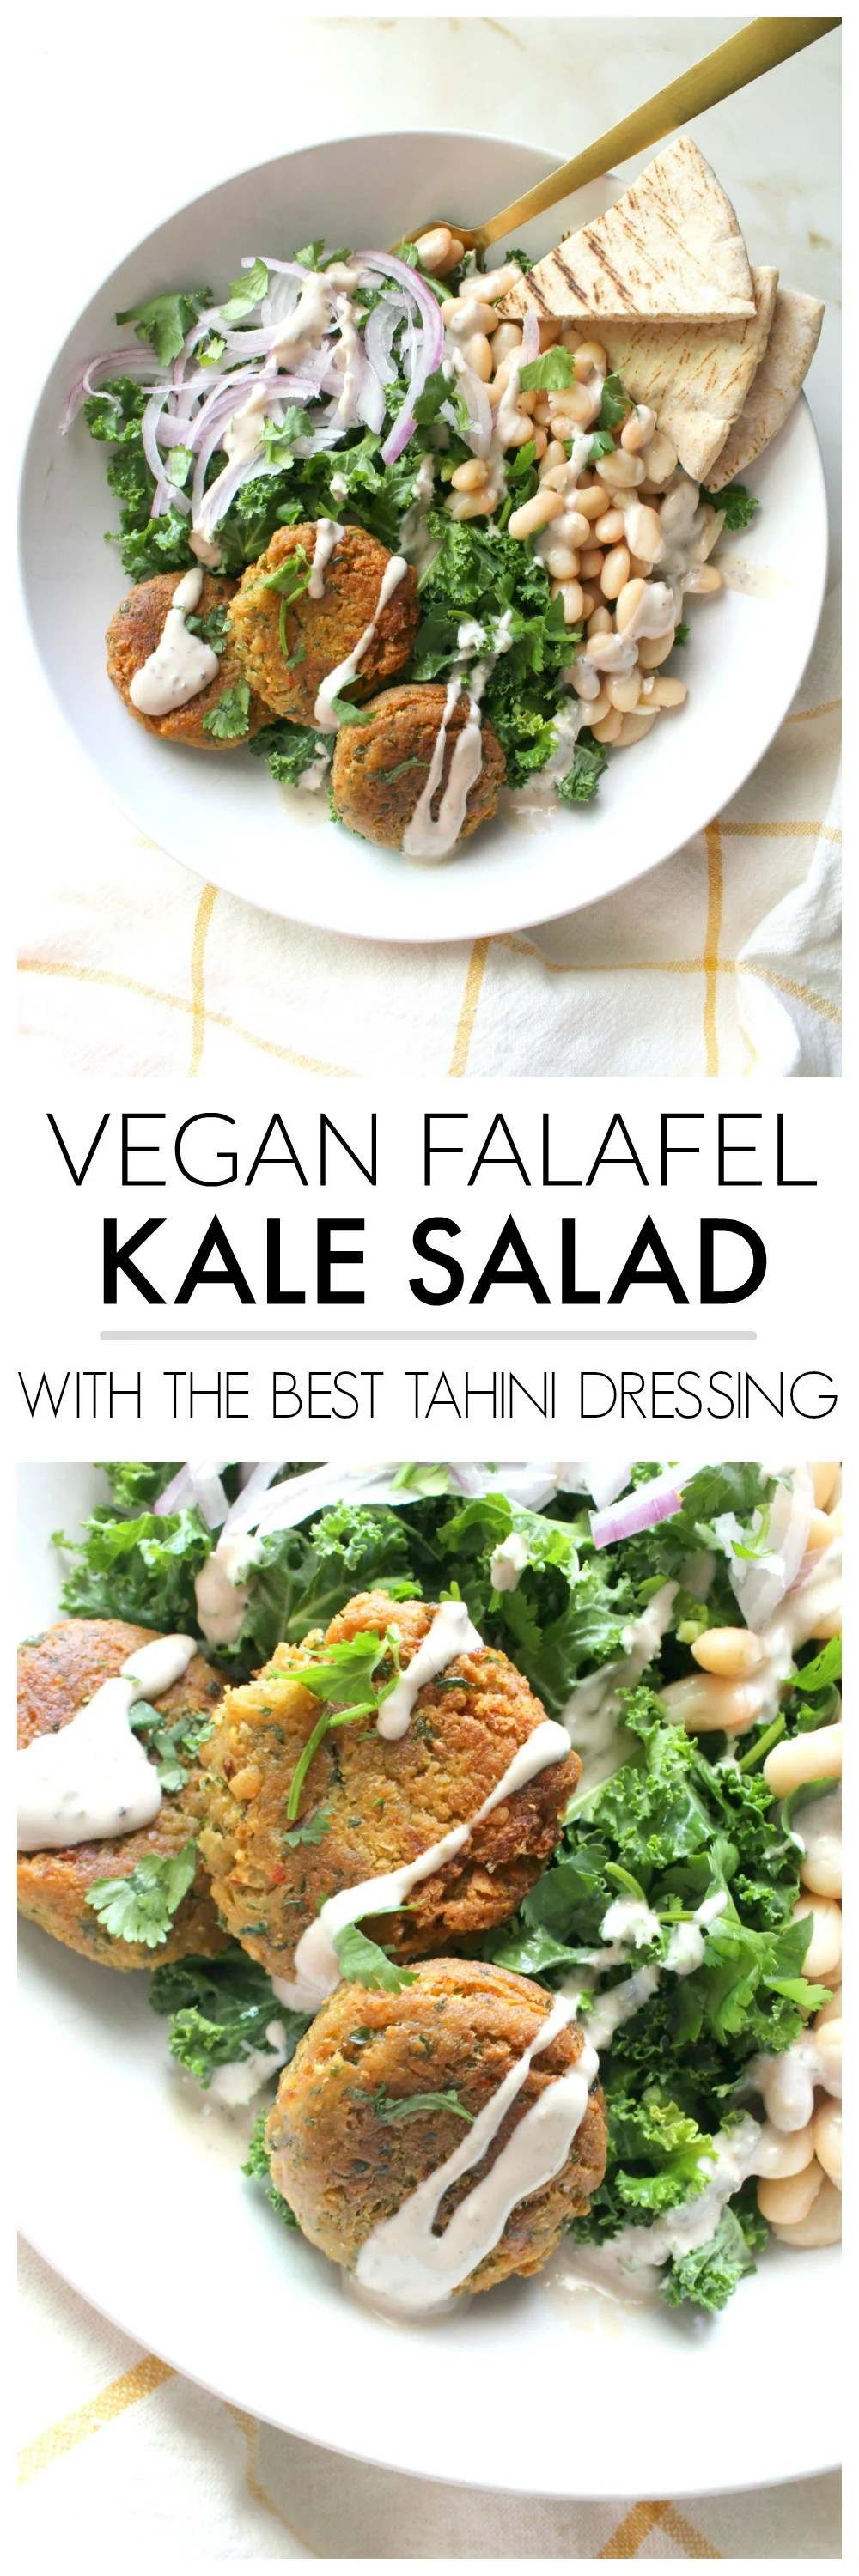 This Falafel Kale Salad with The Best Tahini Dressing is going to be your new go-to meal. Filled with healthy veggies, great flavors and a creamy oil-free dressing that is delish | ThisSavoryVegan.com #thissavoryvegan #healthy #salad